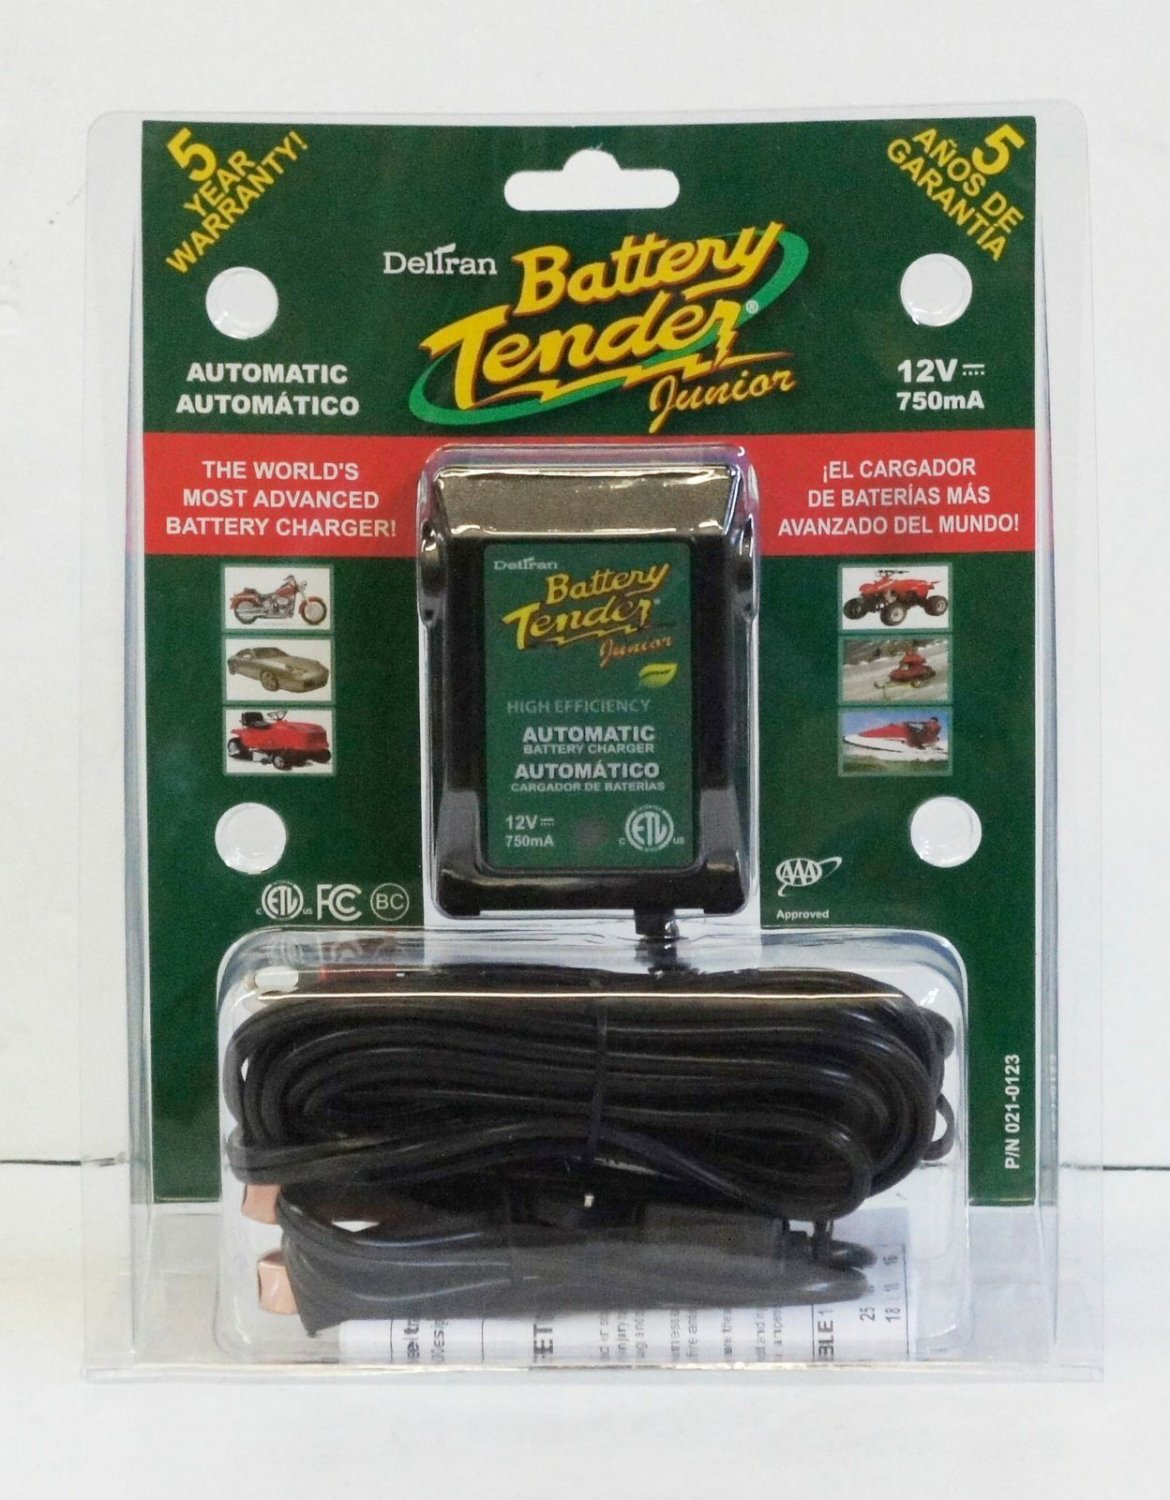 Battery Tender® Junior 12V, 750mA Battery Charger Mantainer Car Motorcycle